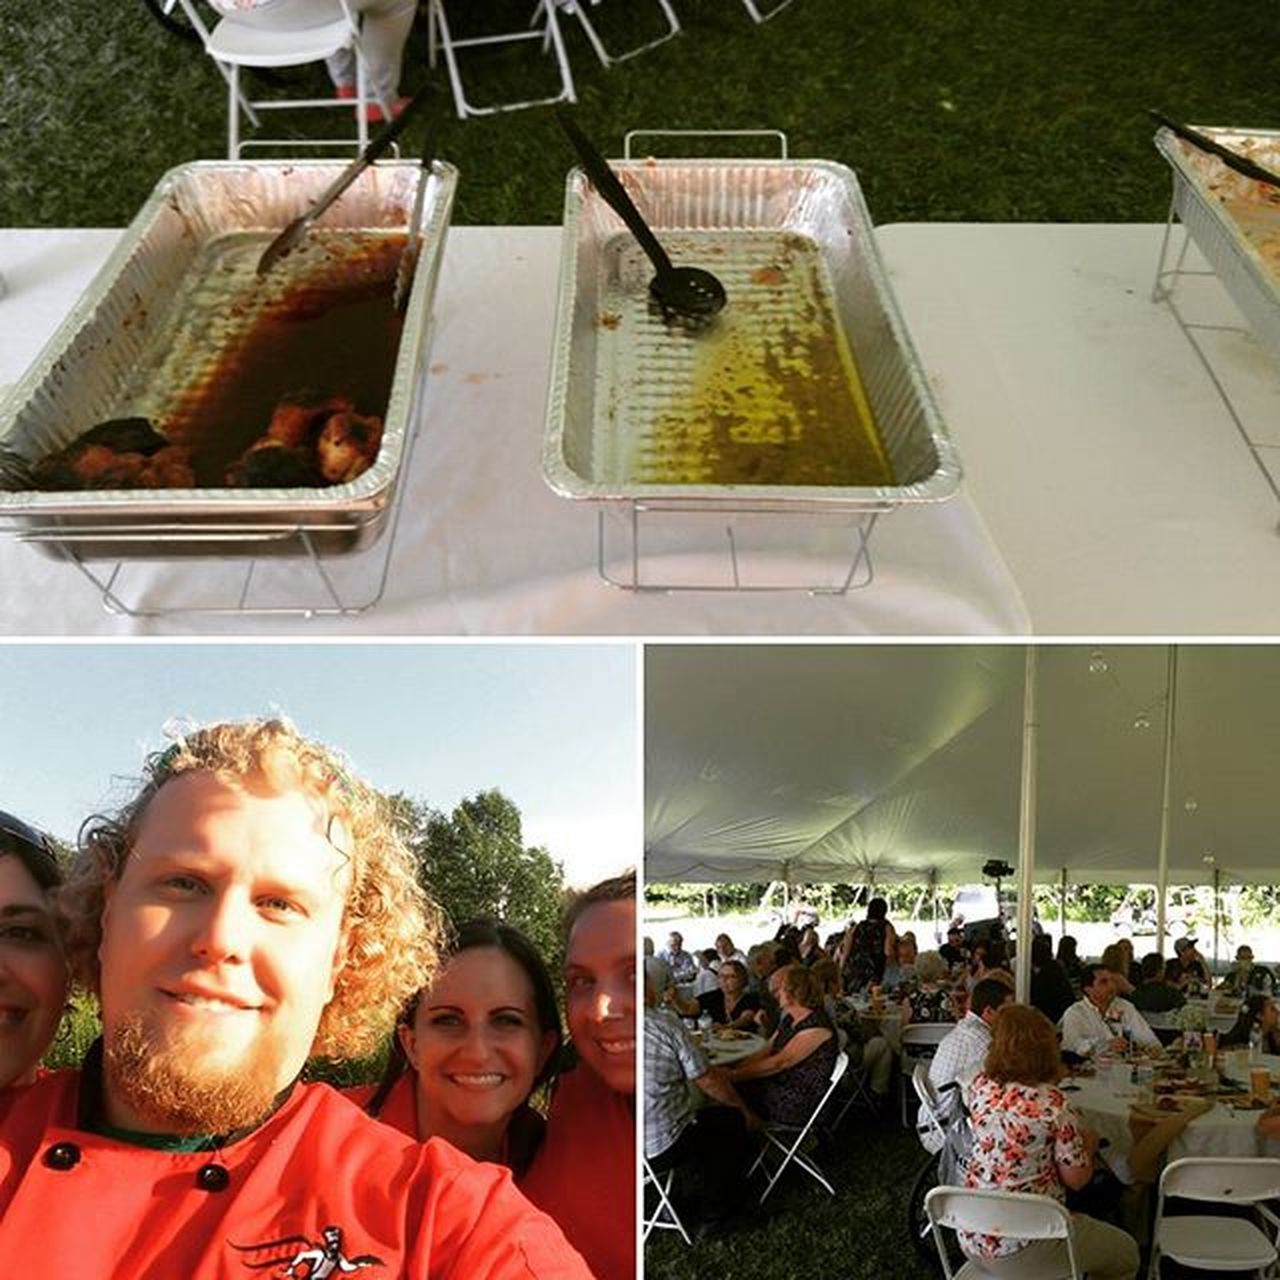 The Running Chef Catering with another successful outdoor wedding. Not a drop of food left after people came up for seconds. Ocr Ocrunited Hyletecompeteteam Eatnuttzo Teamcorepower Buffalo Buffalocaterer Buffalony Buffaloweddings Wedding Showers Anniversary Dinner Outsidewedding